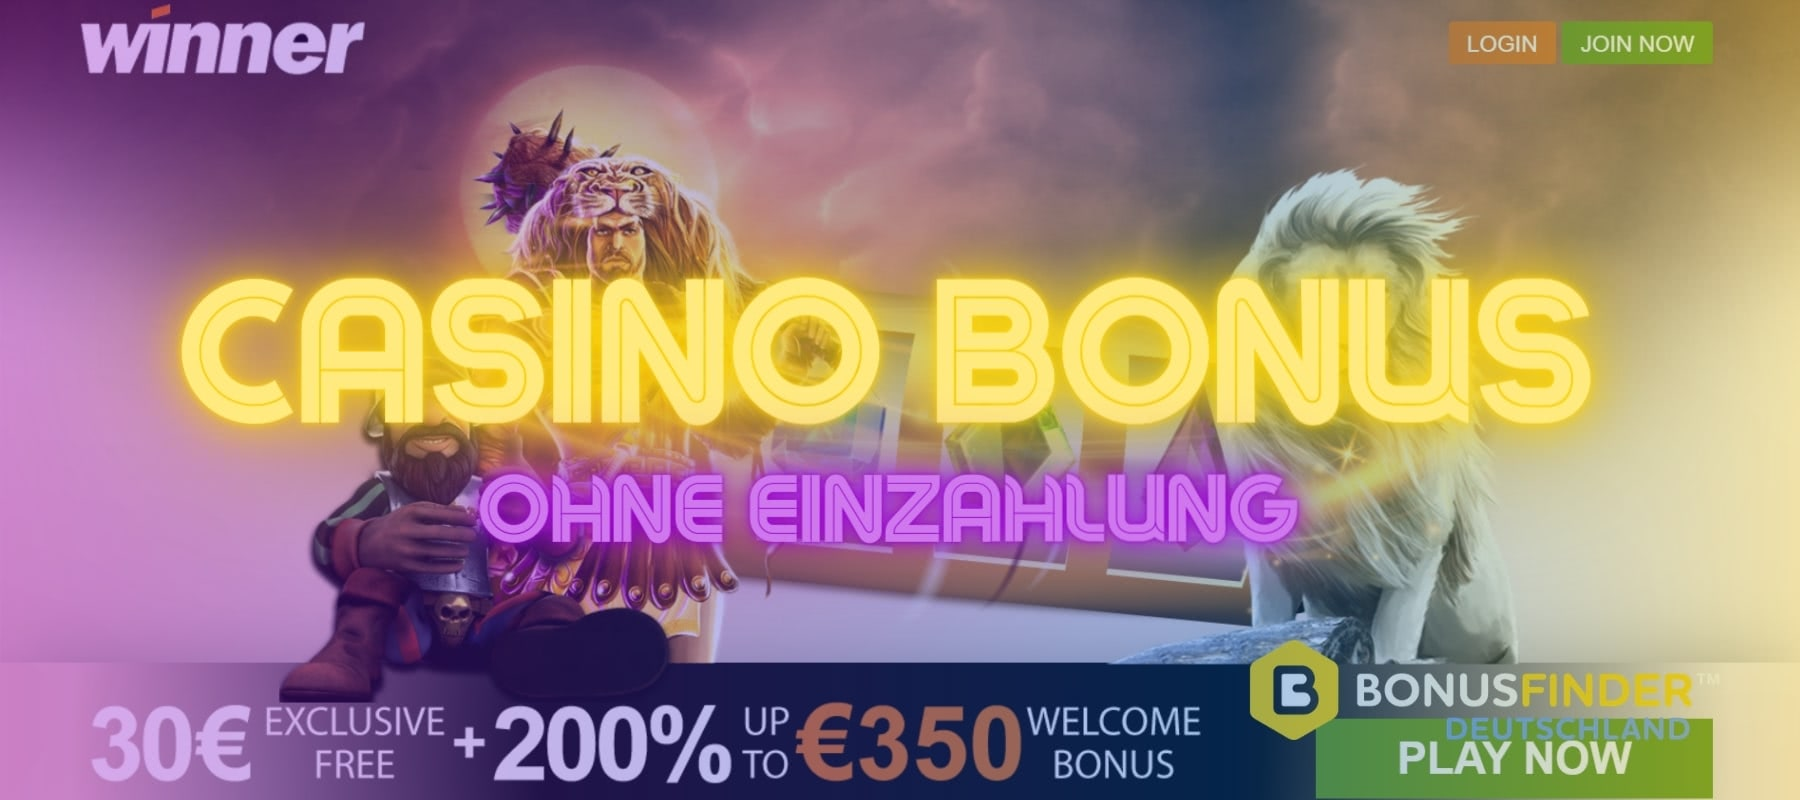 Winner Casino Bonus